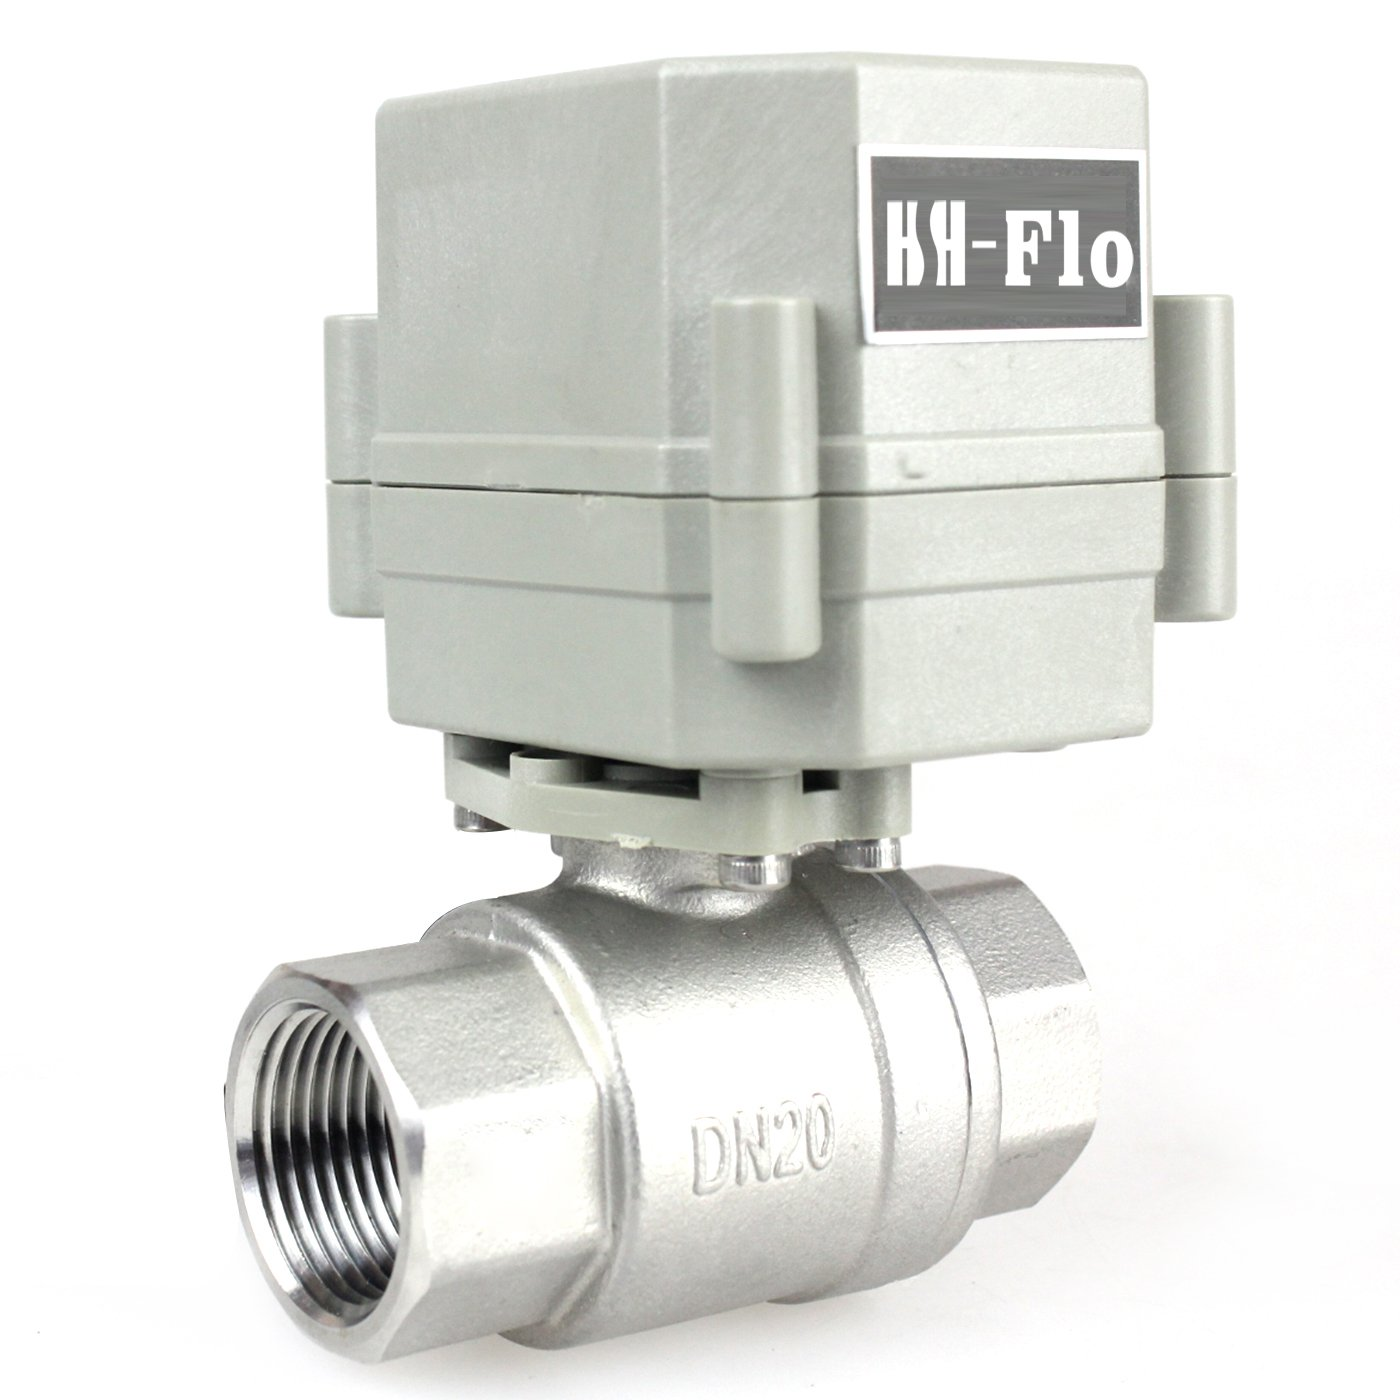 HSH-Flo 3//4 DN20 110VAC Stainless Steel Motorized Ball Valve,Normally Open Electrical Ball Valve 3//4 Normally Open Electrical Ball Valve 3//4/'/'